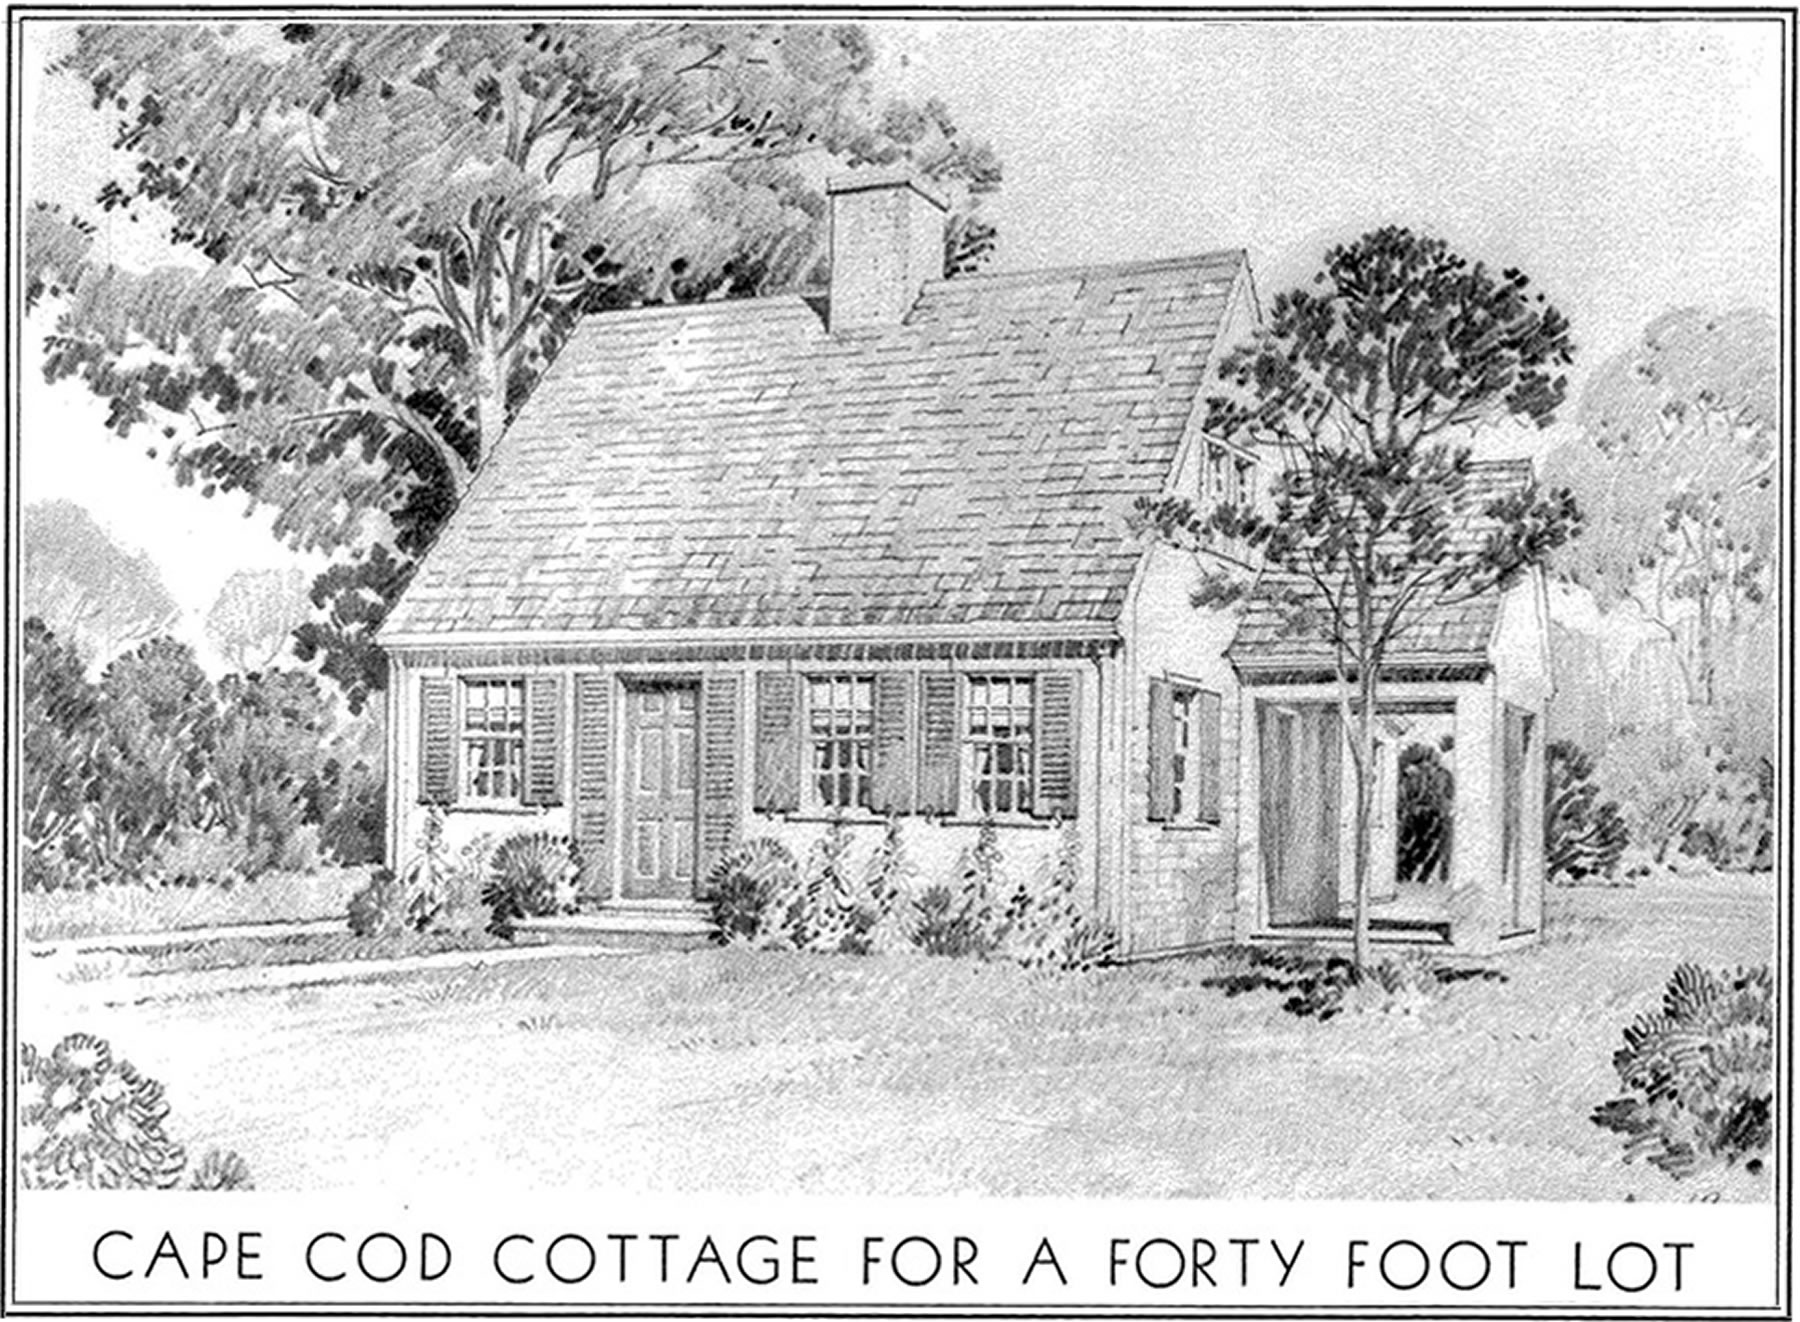 Modern small homes from enduring products of the forests ...  |1948 Cape Cod House Plans